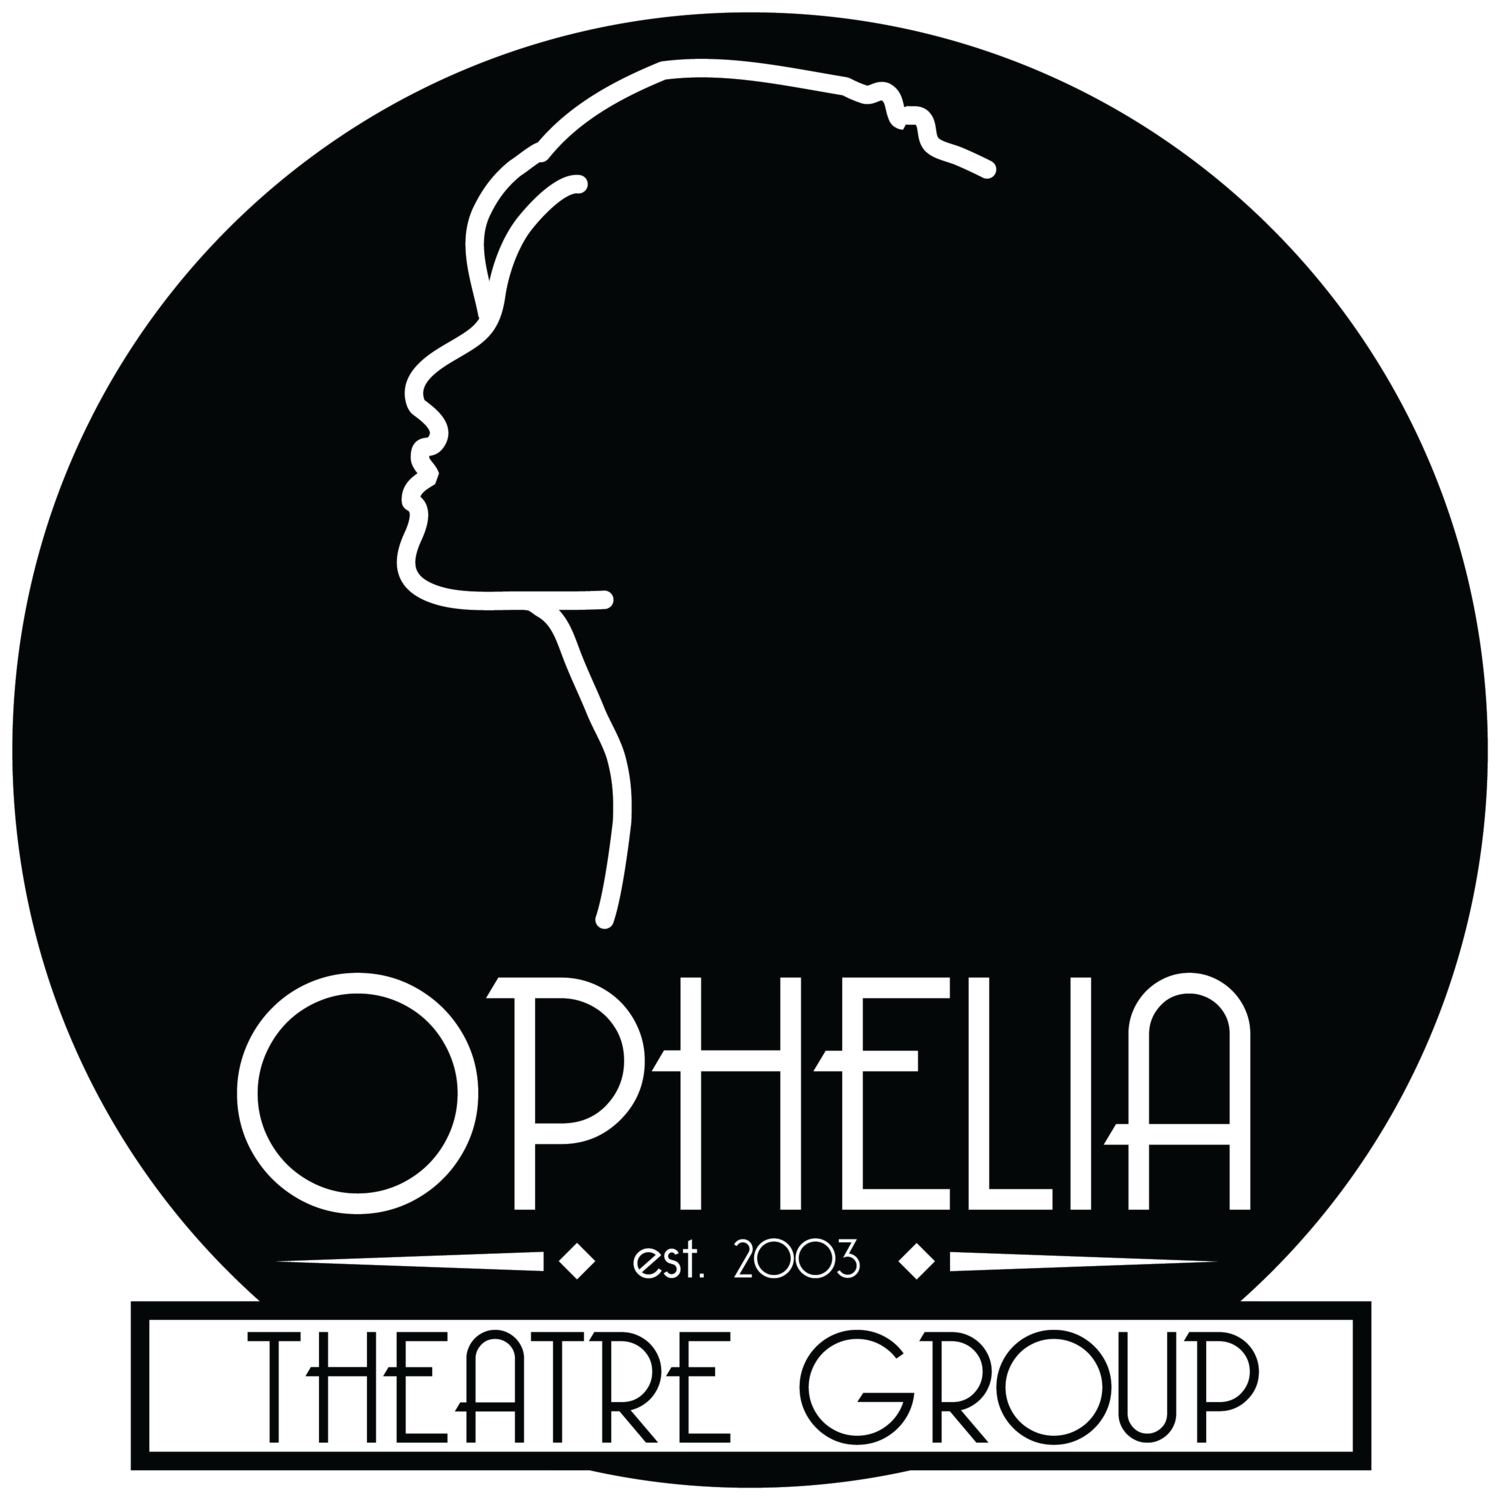 Ophelia Theatre Group